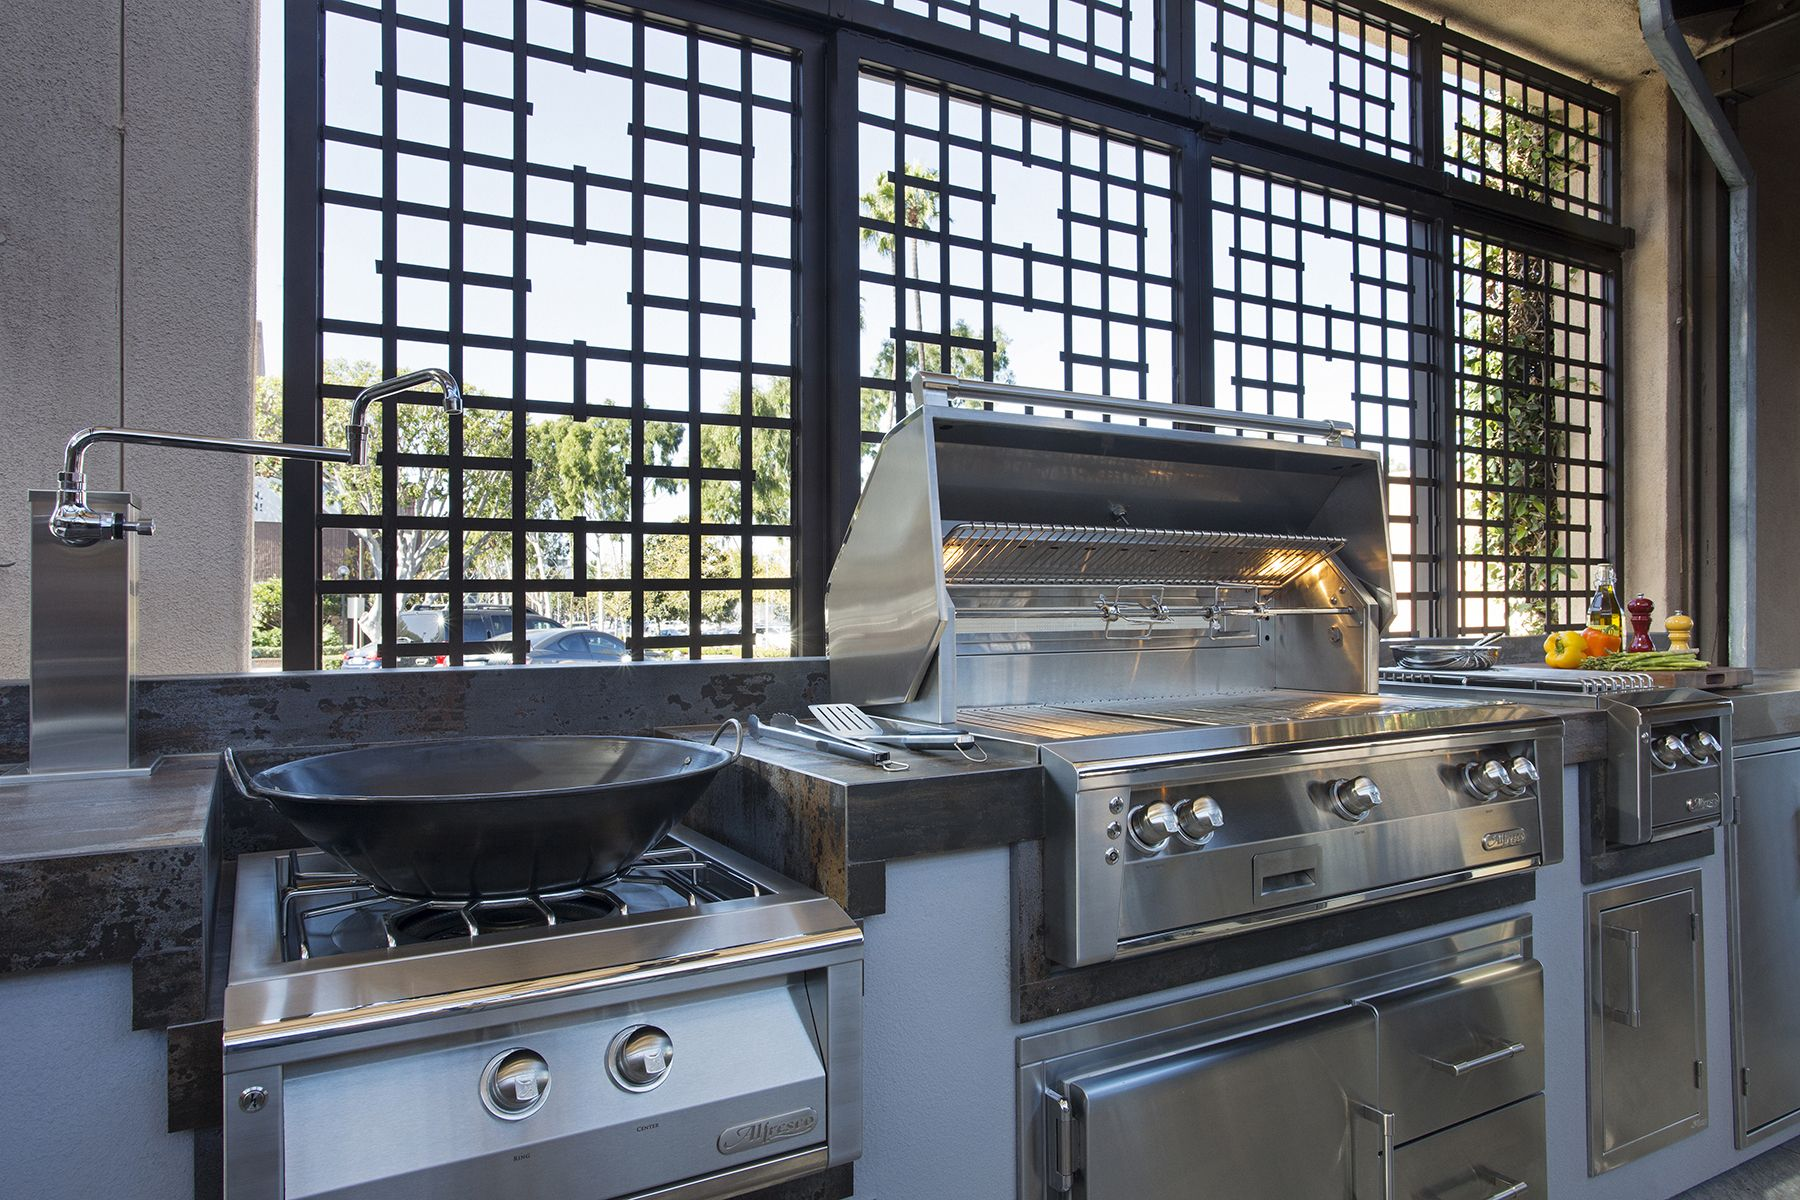 Alfresco Outdoor Kitchen With Alxe Grill Accessories And Pizza Oven Plus Outdoor Kitchen Alfresco Kitchen